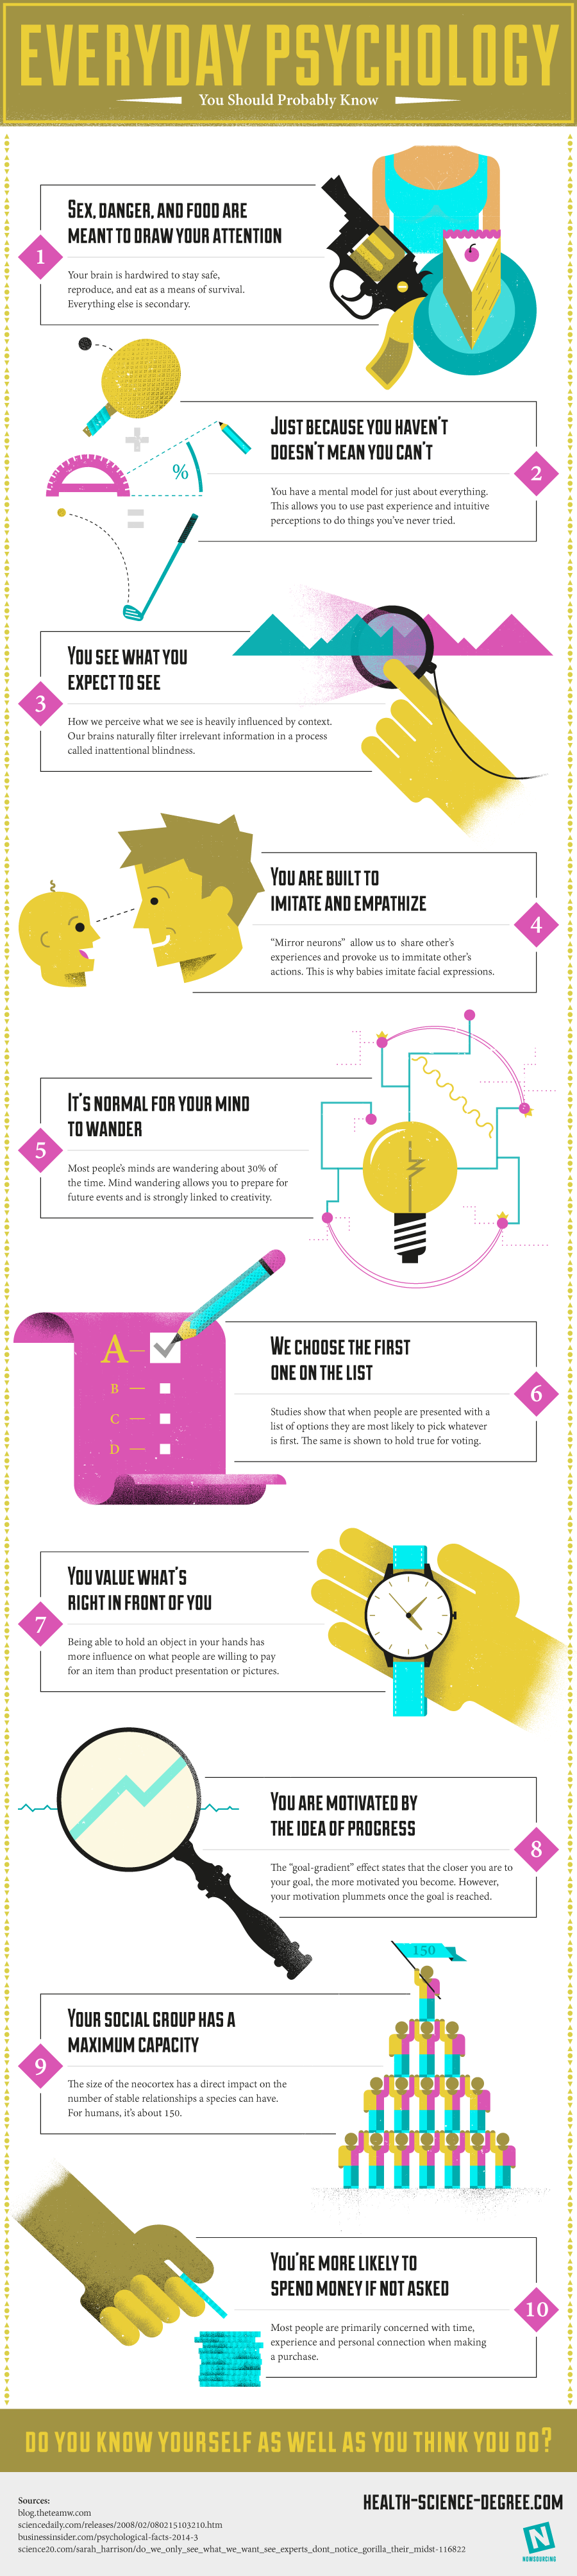 Infographic: Everyday Psychology You Should Probably Know